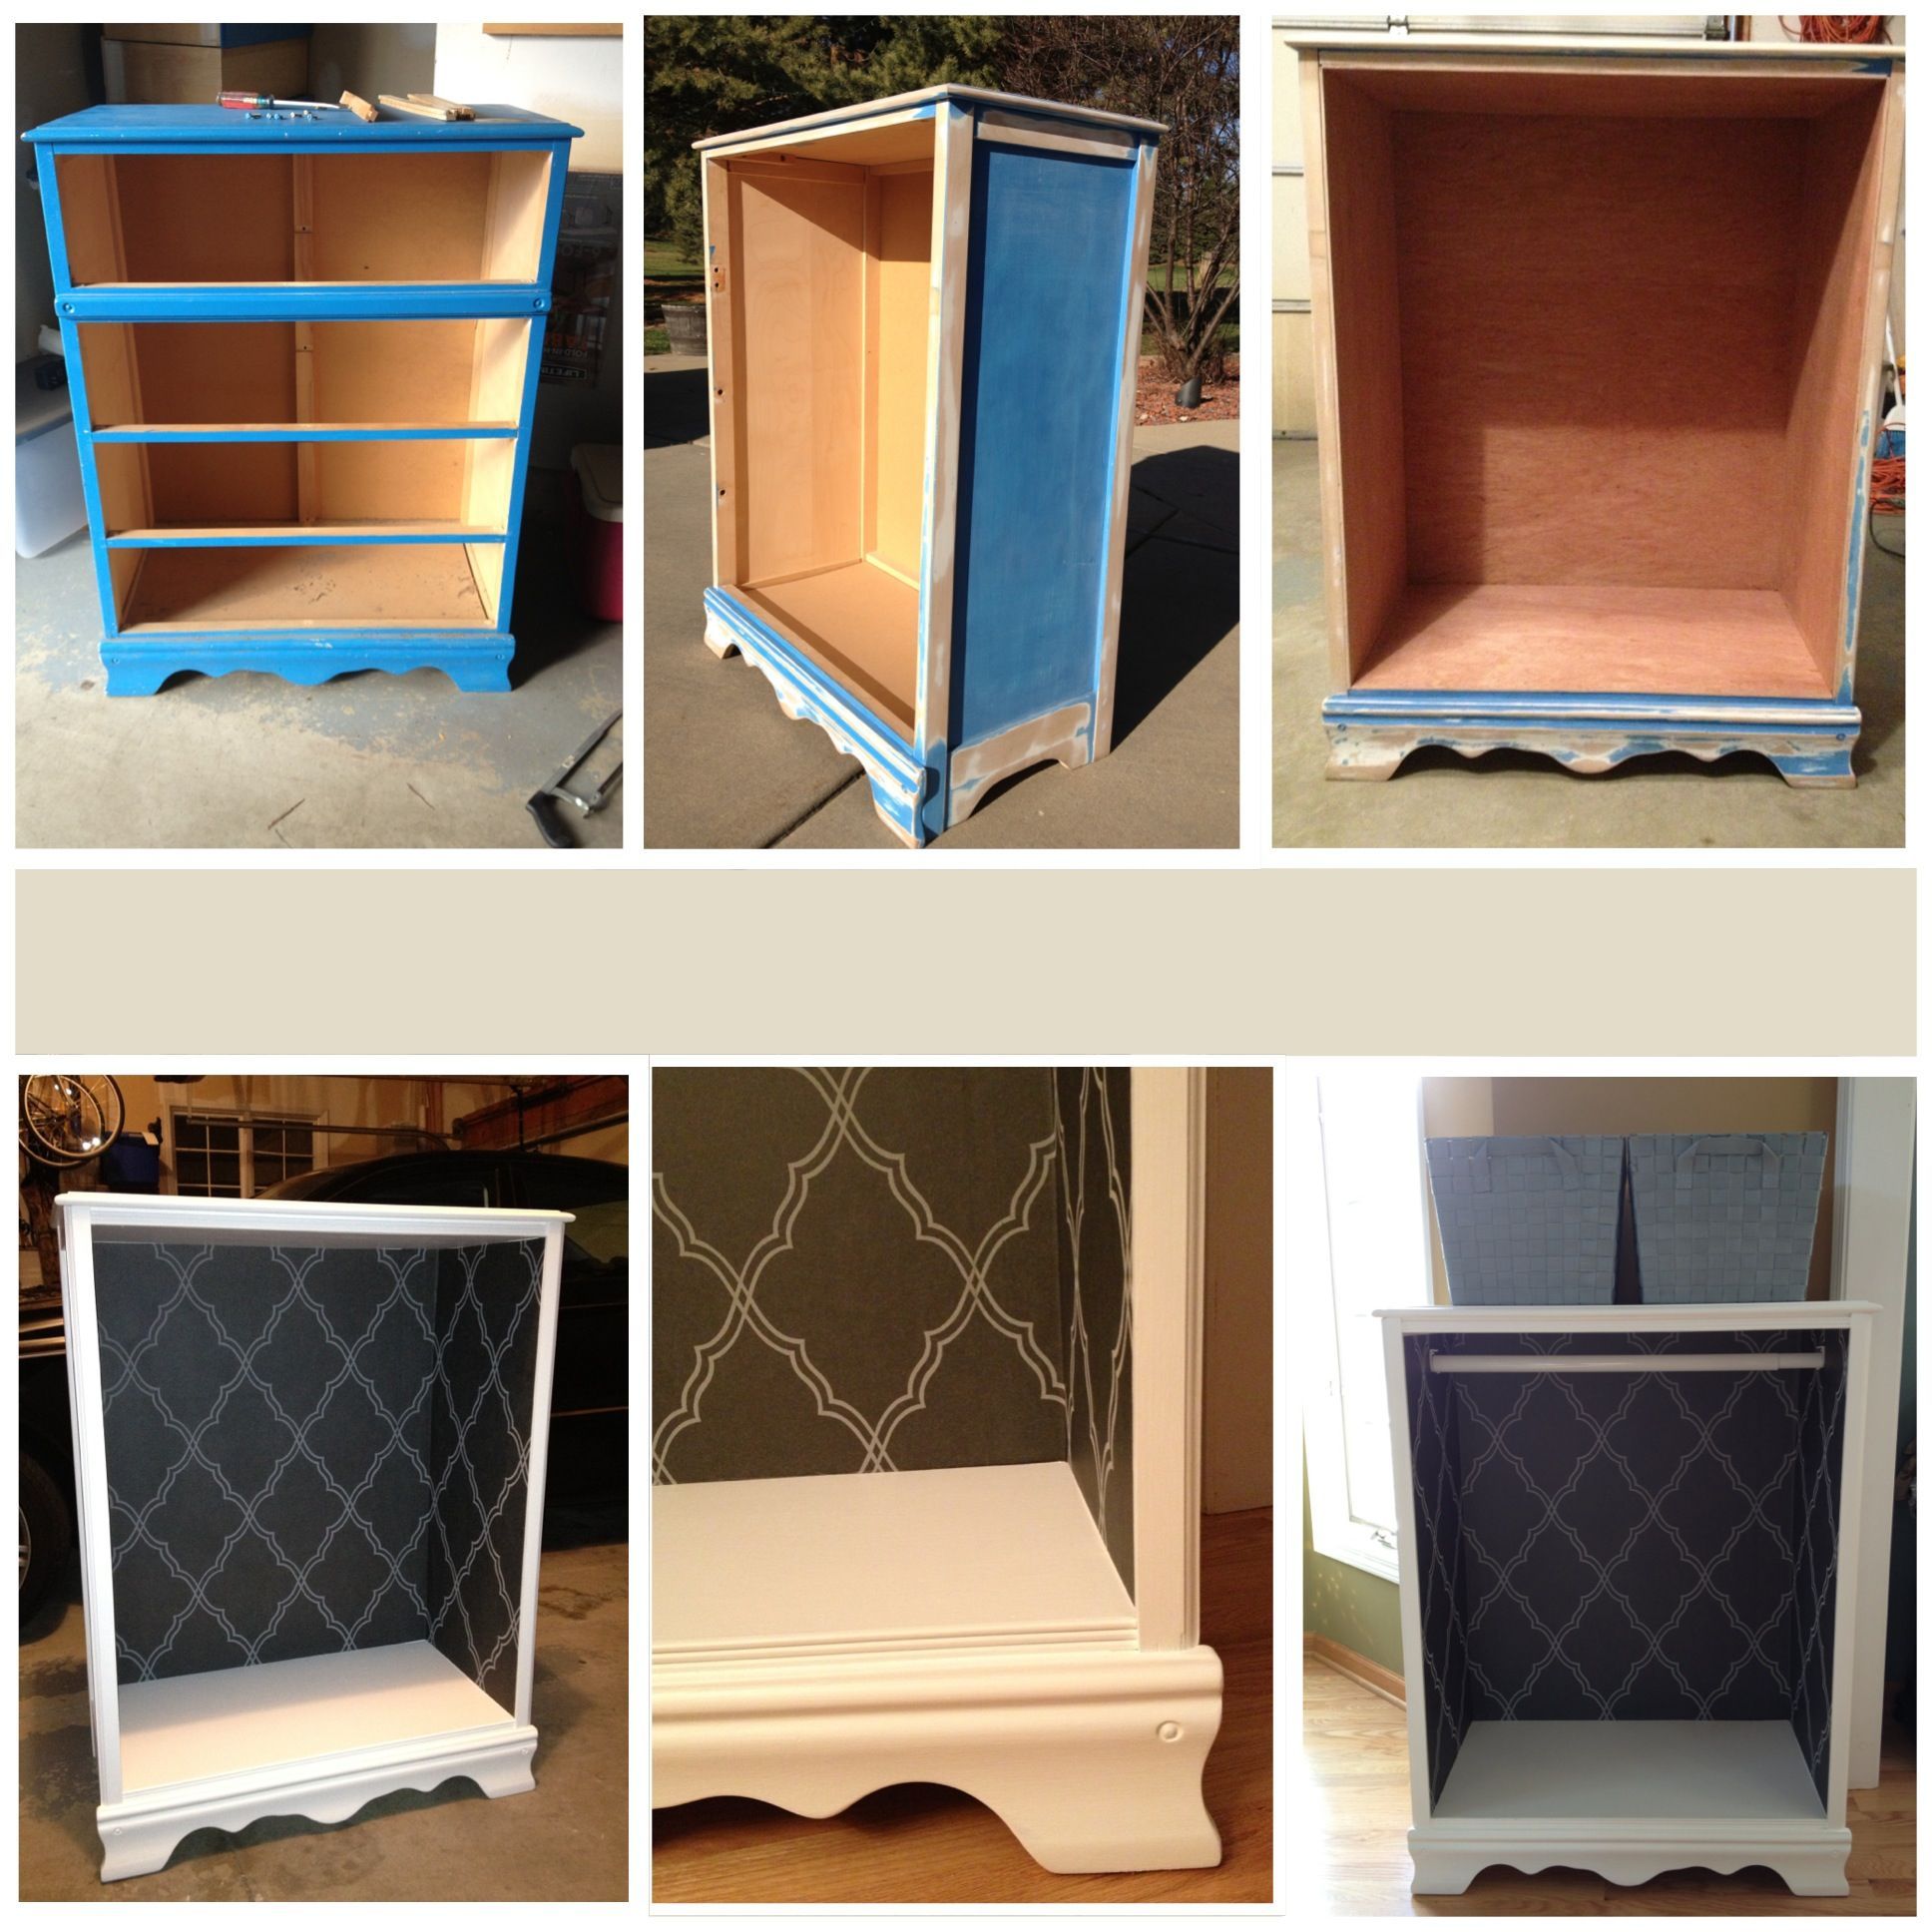 Diy Dress Up Storage Refinished Dresser Turned Into A Wardrobe Closet For Baby